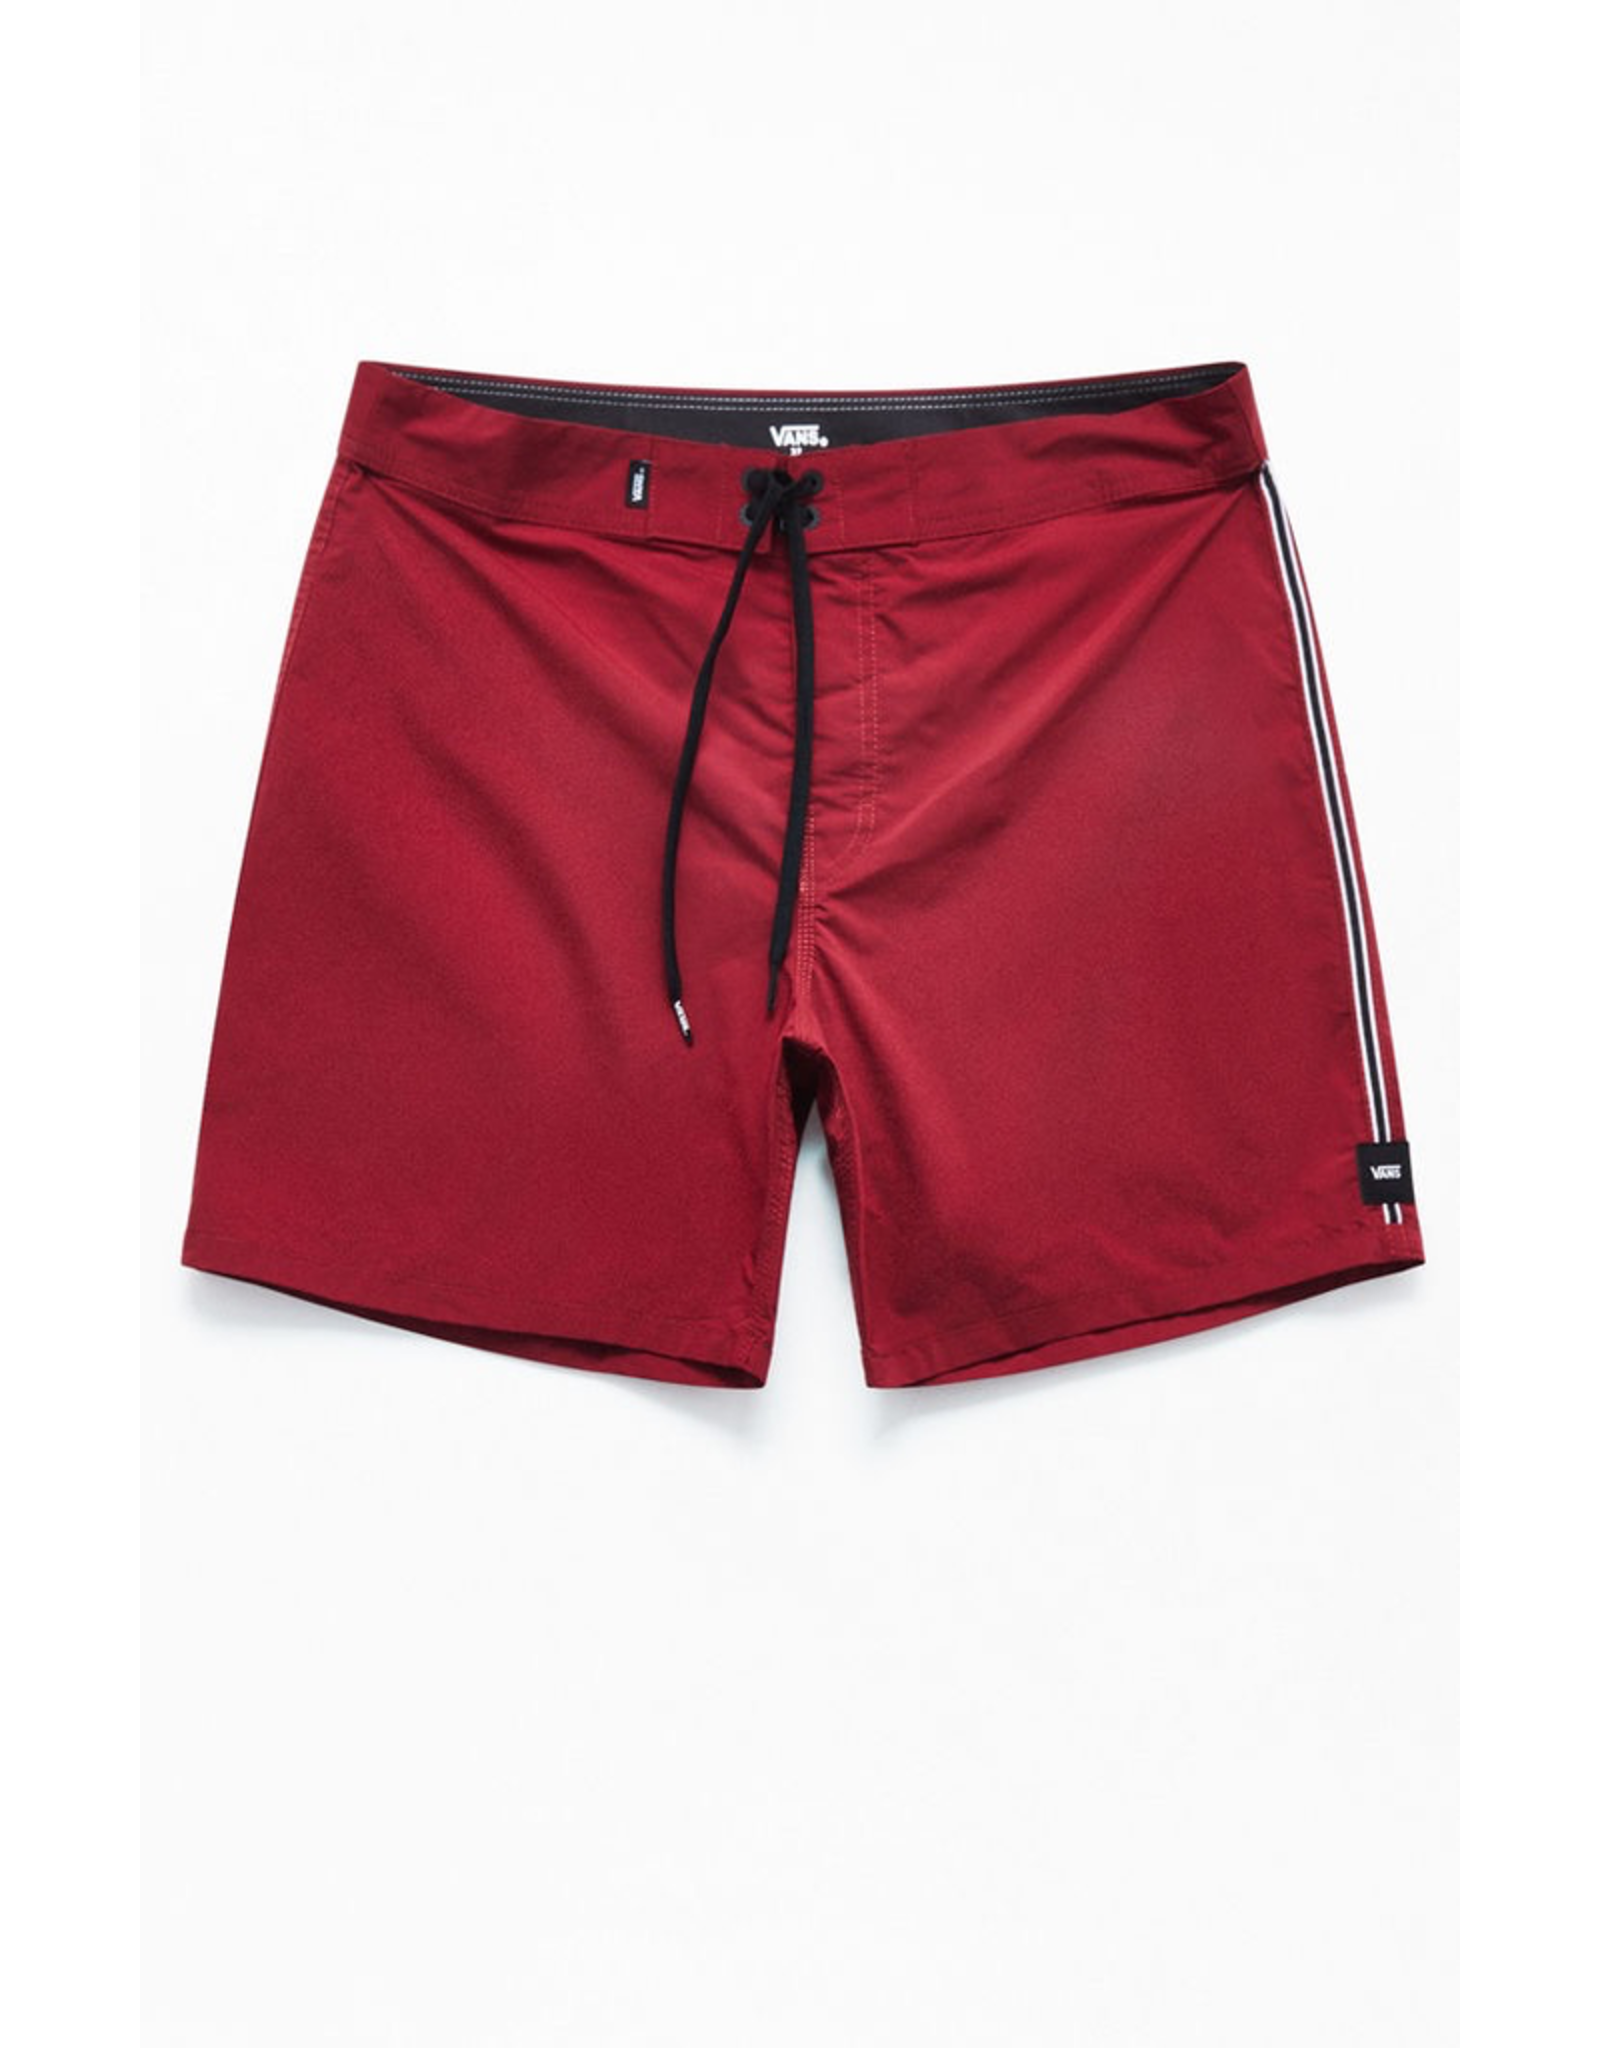 Vans Ever-Ride Boardshort